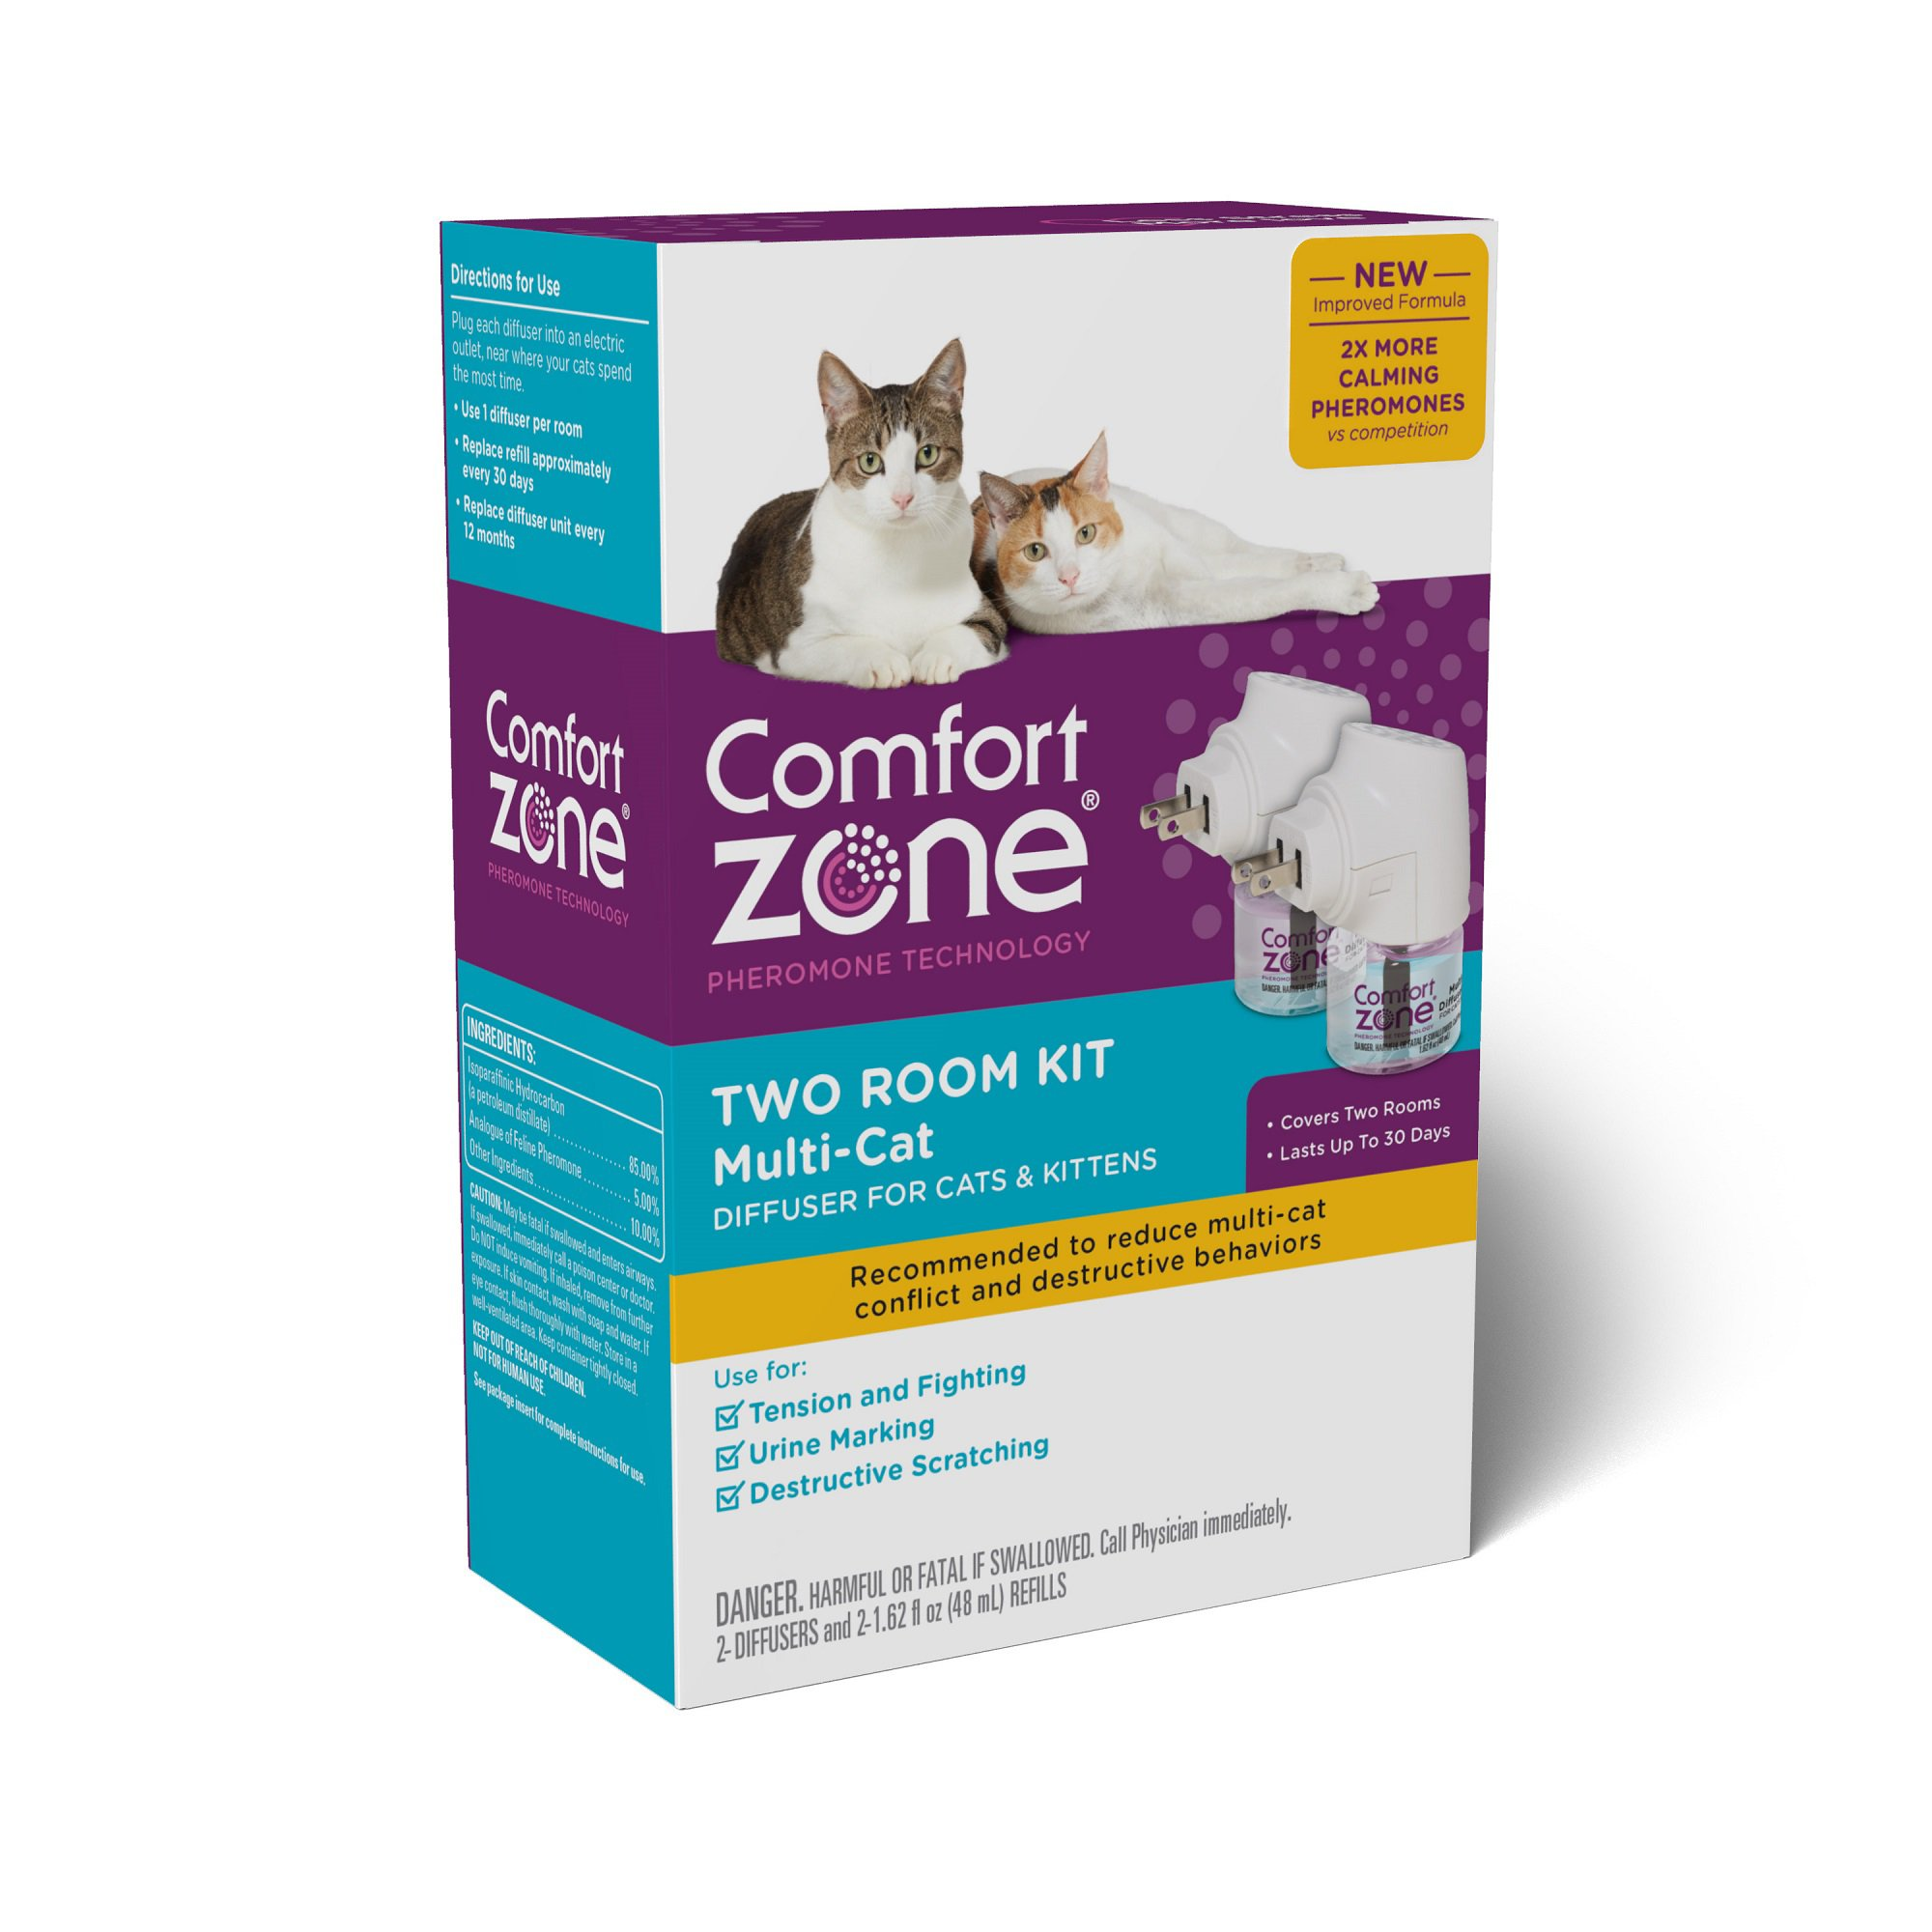 com and flea small comforter diffuser friday for product zone on oz comfort total cats adams images image fl centrallifesciences tick pet june pm spot